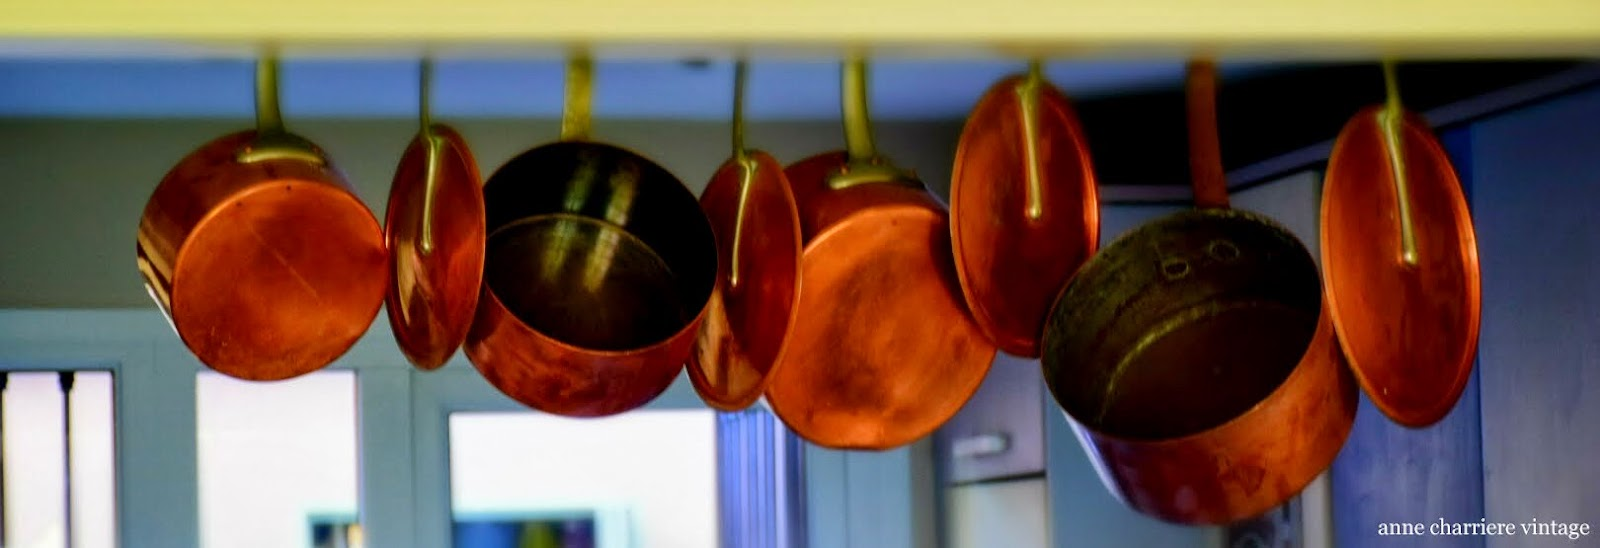 www.annecharriere.com, anne charriere vintage, kitchen rack pots,